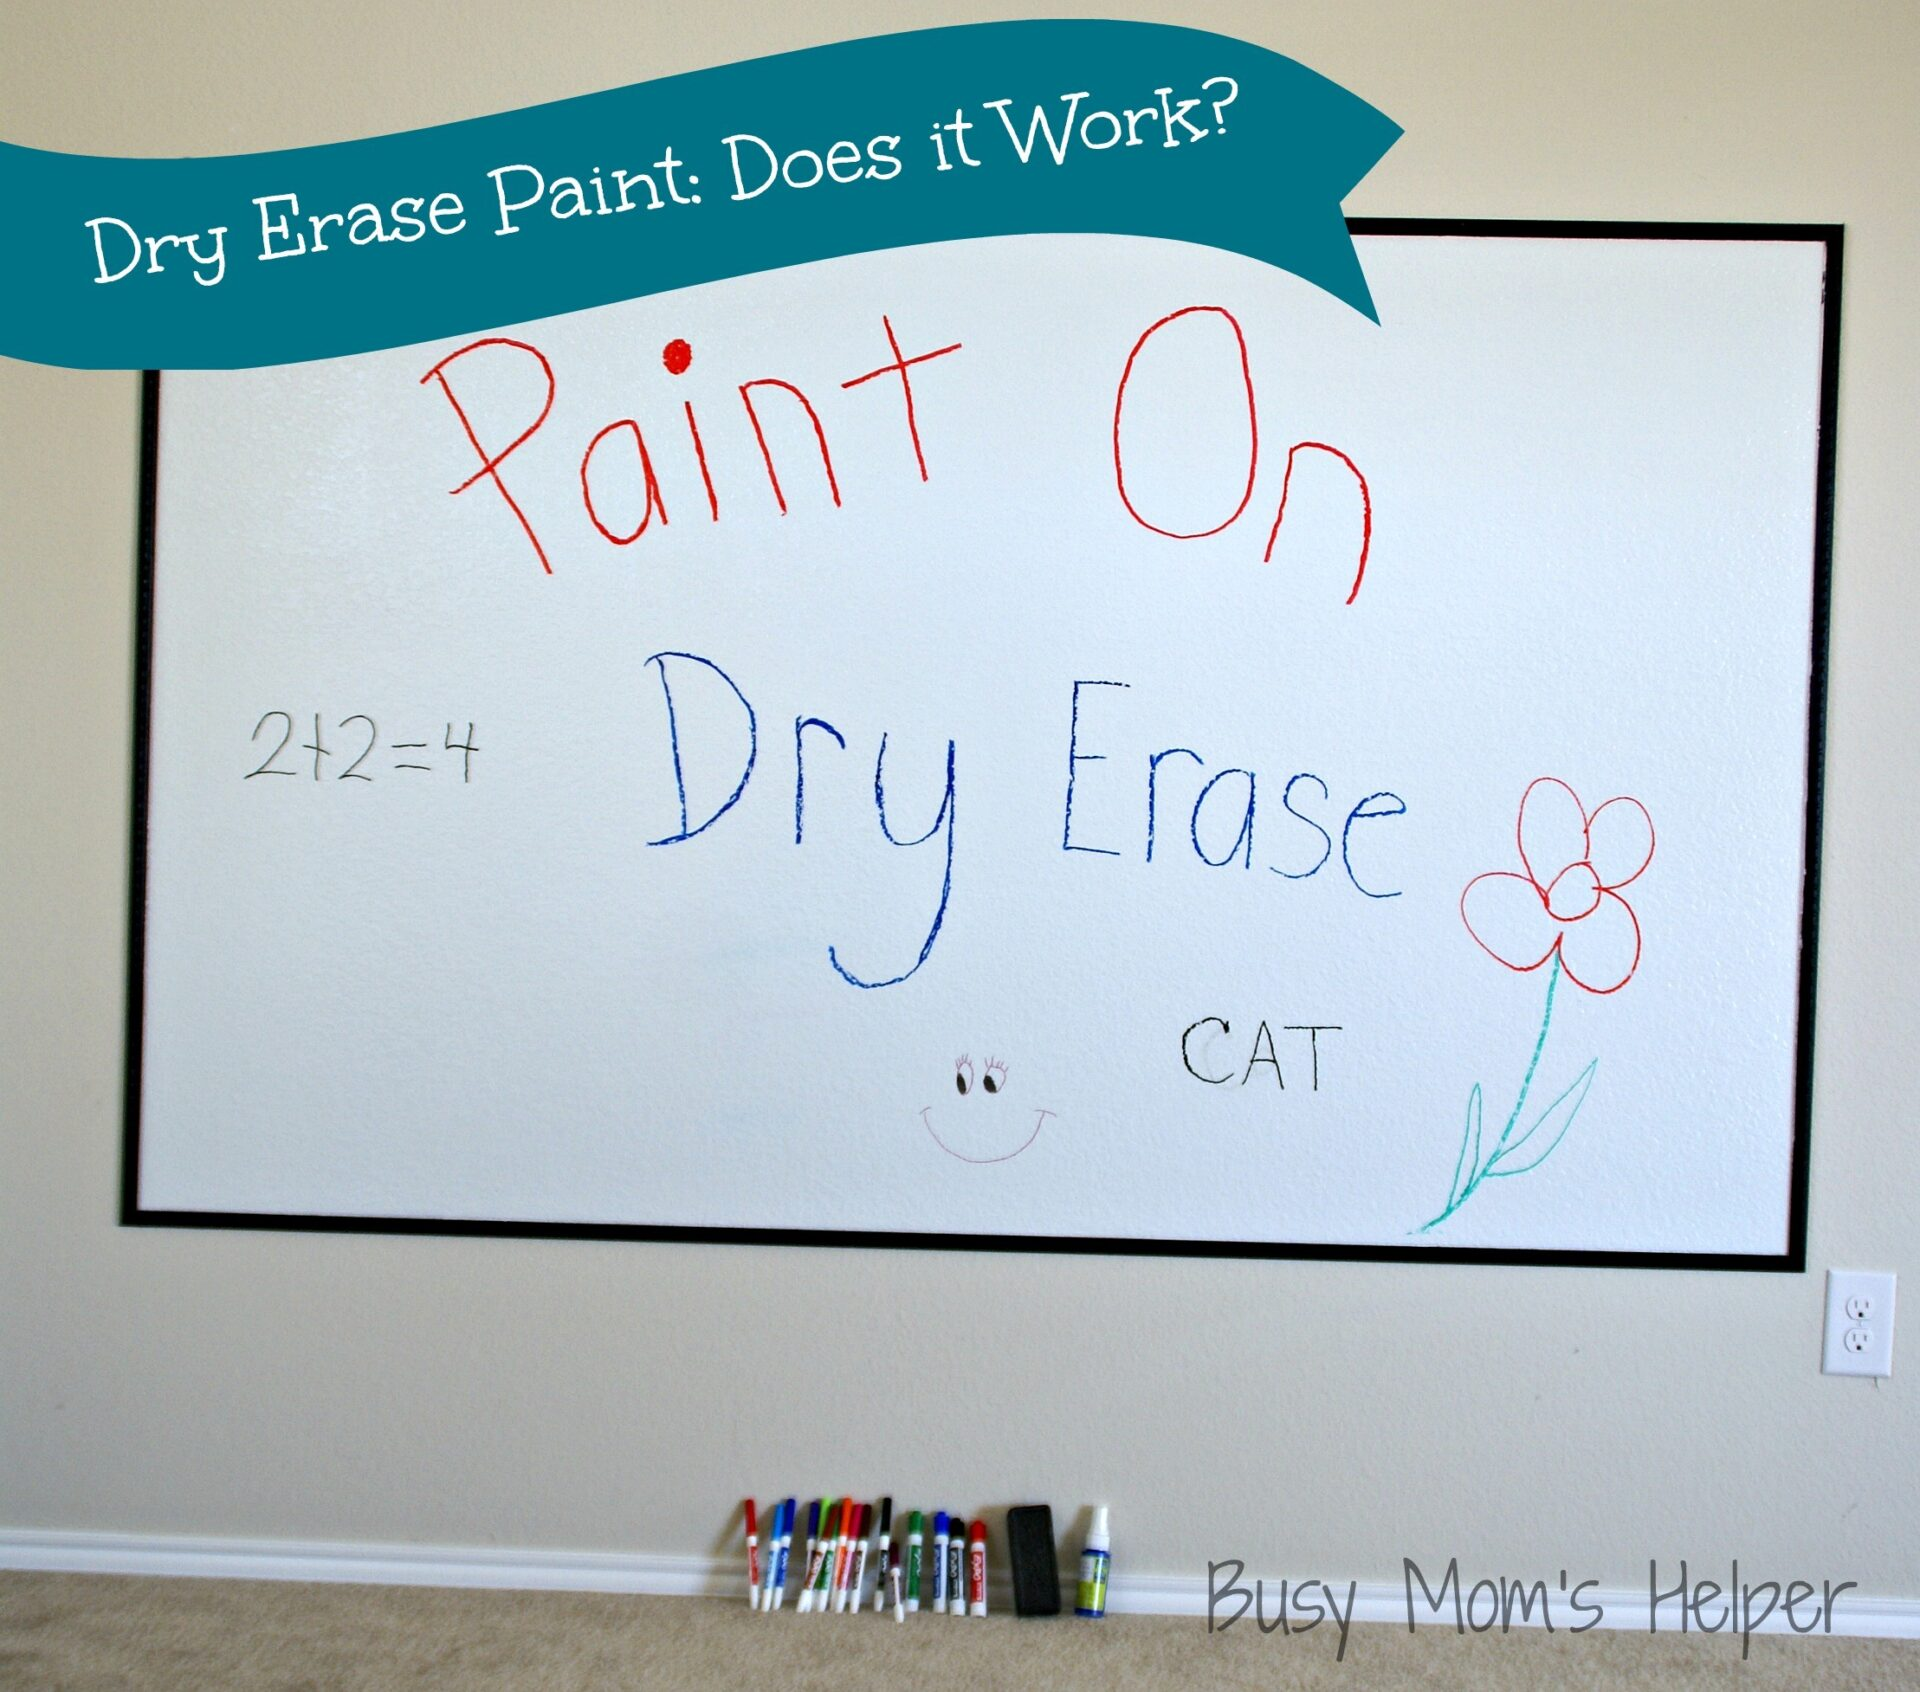 Dry Erase Paint Does it Work TWO Projects Busy Moms Helper